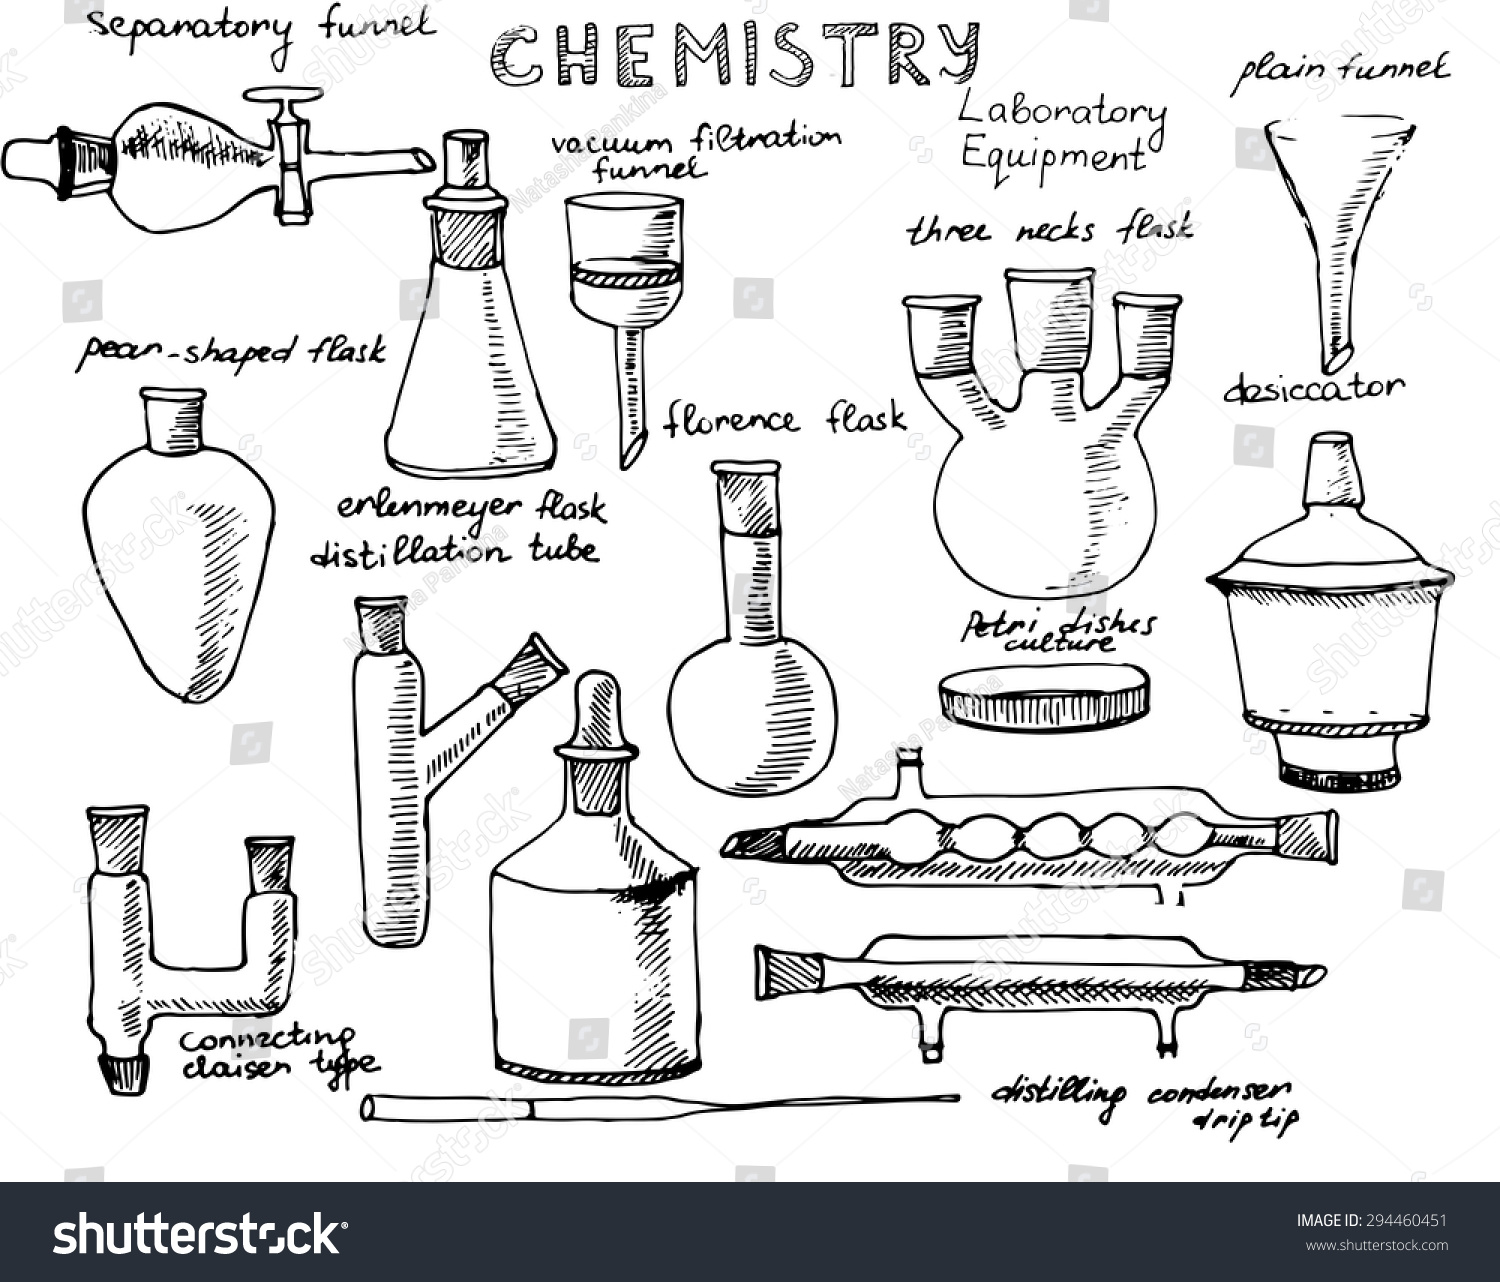 set of hand drawn science chemical equipment  chemistry education    save to a lightbox